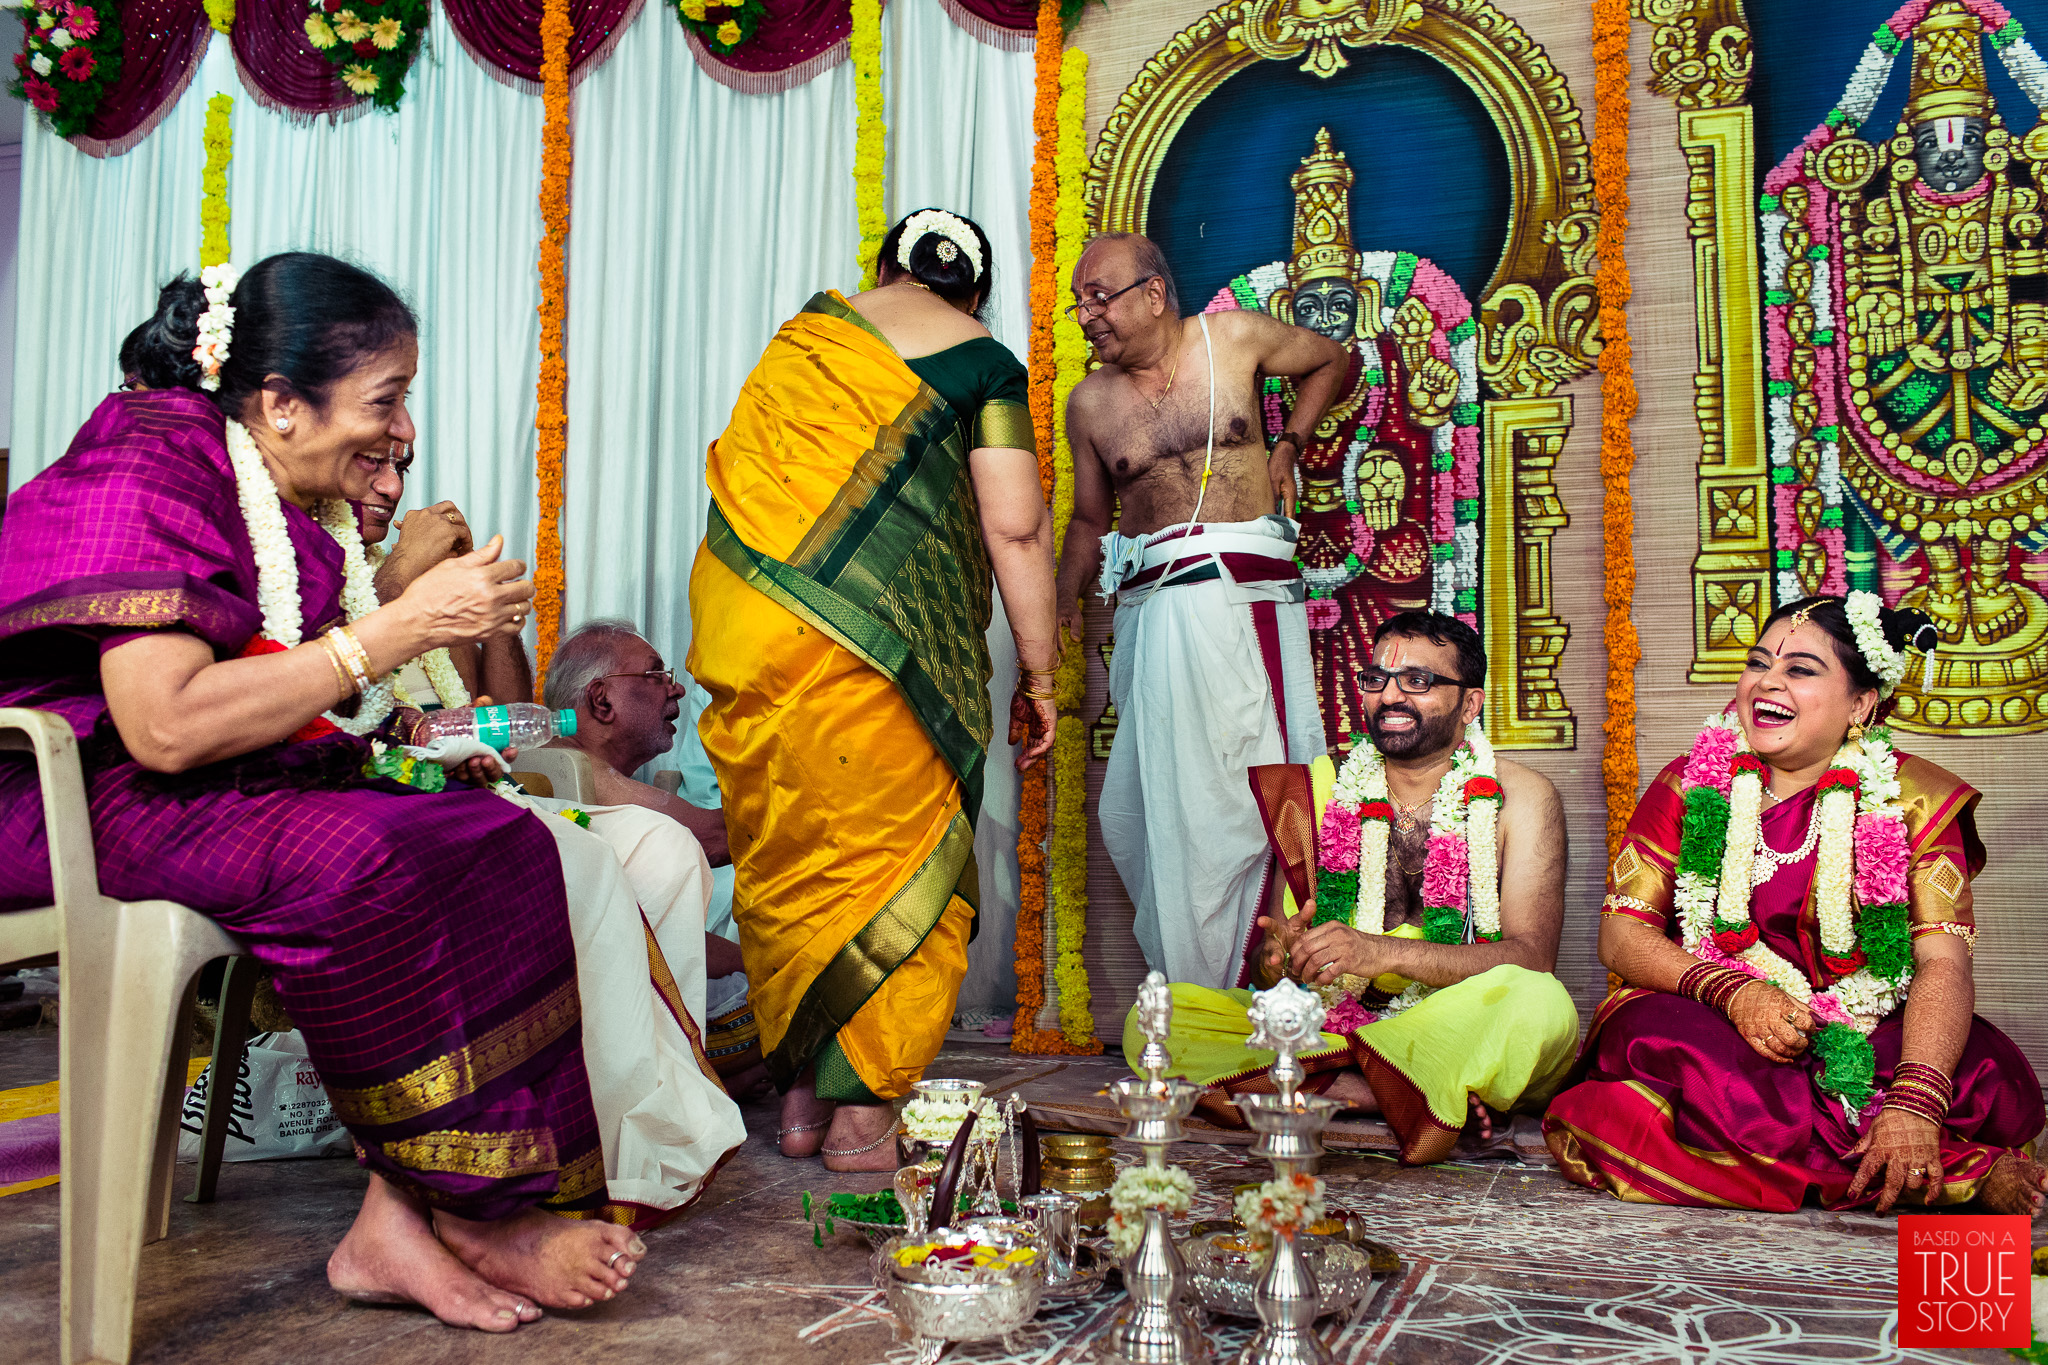 tambrahm-candid-wedding-photographer-bangalore-0032.jpg